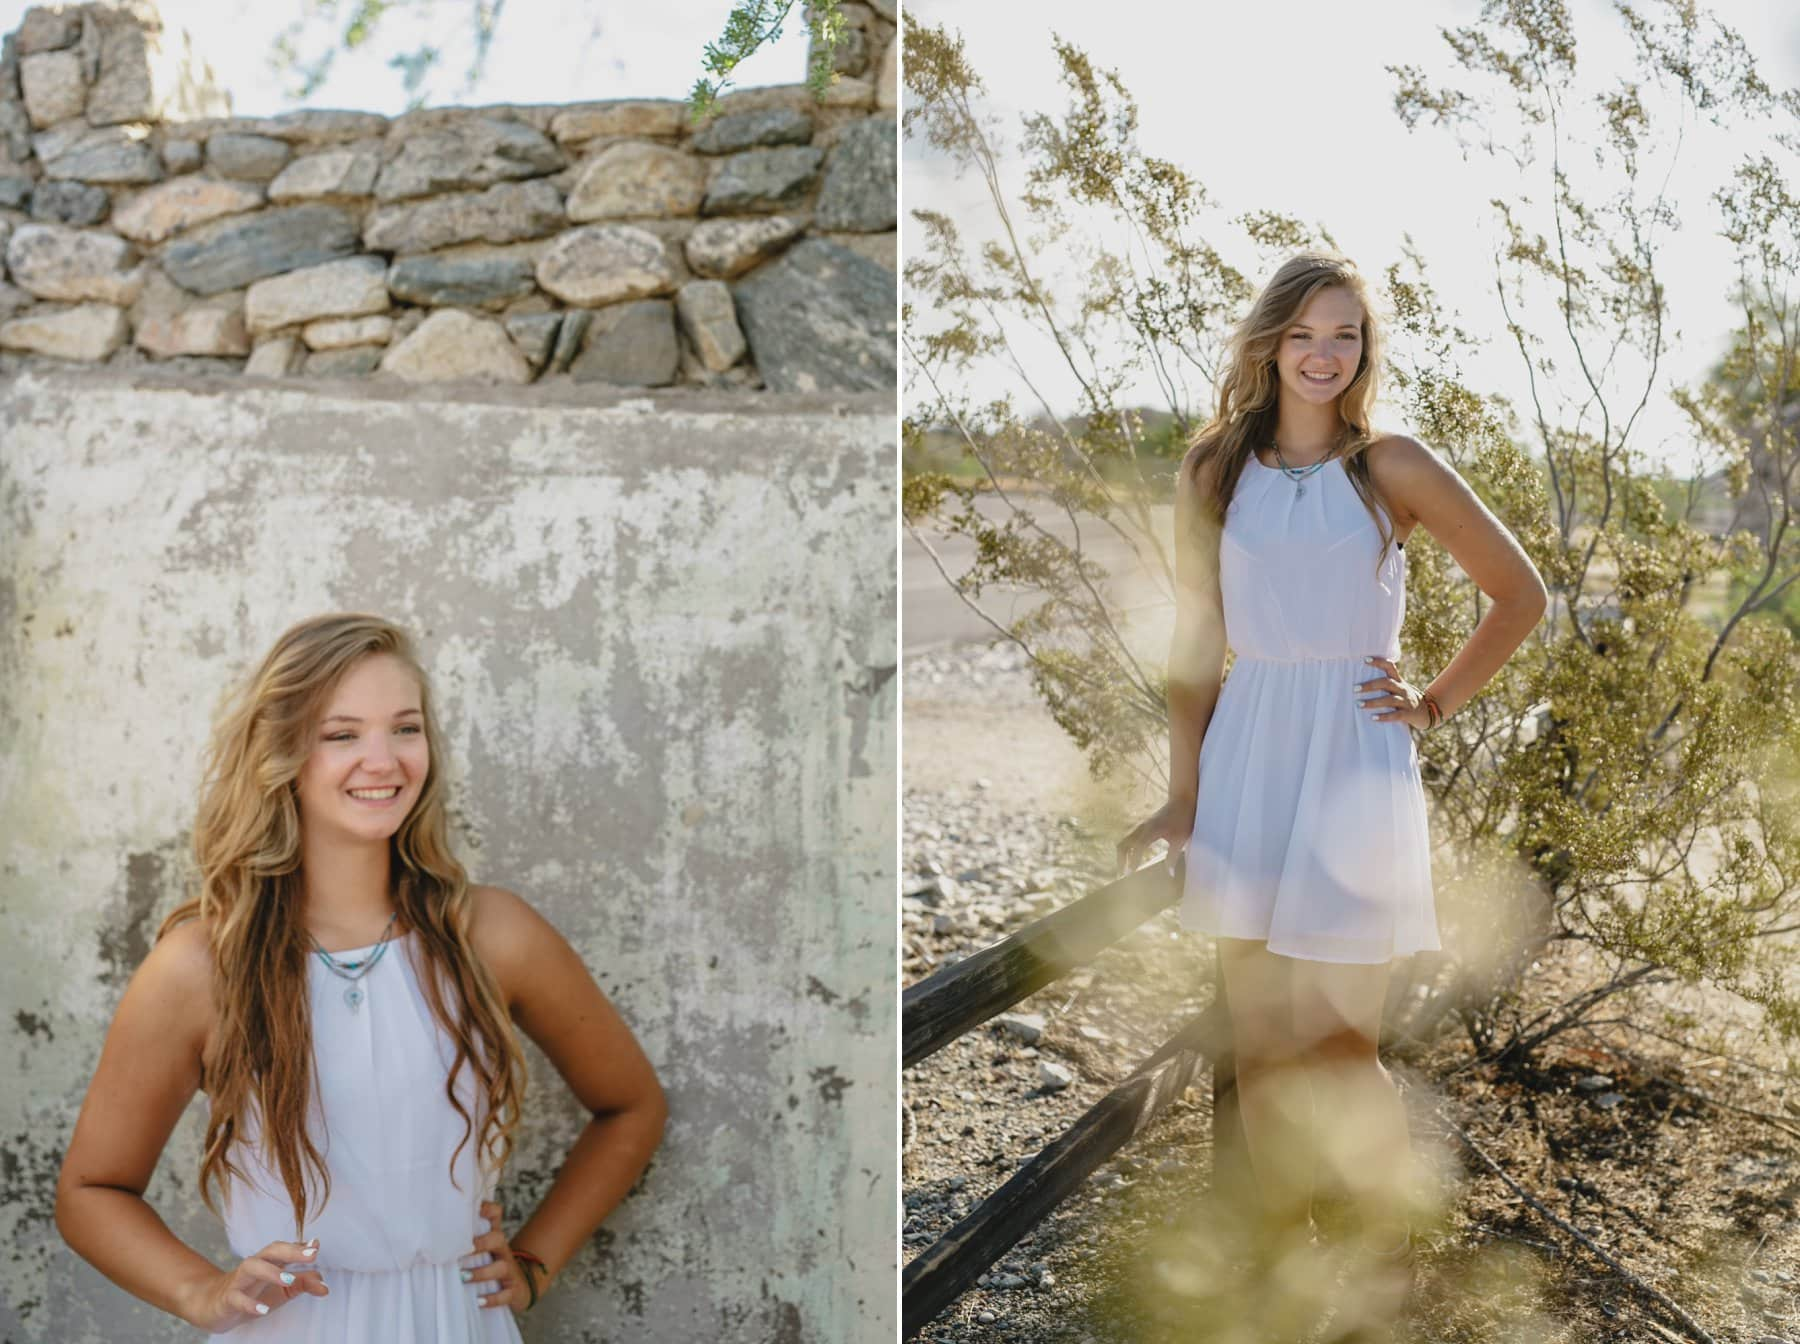 Scorpion Gulch senior photos Arizona